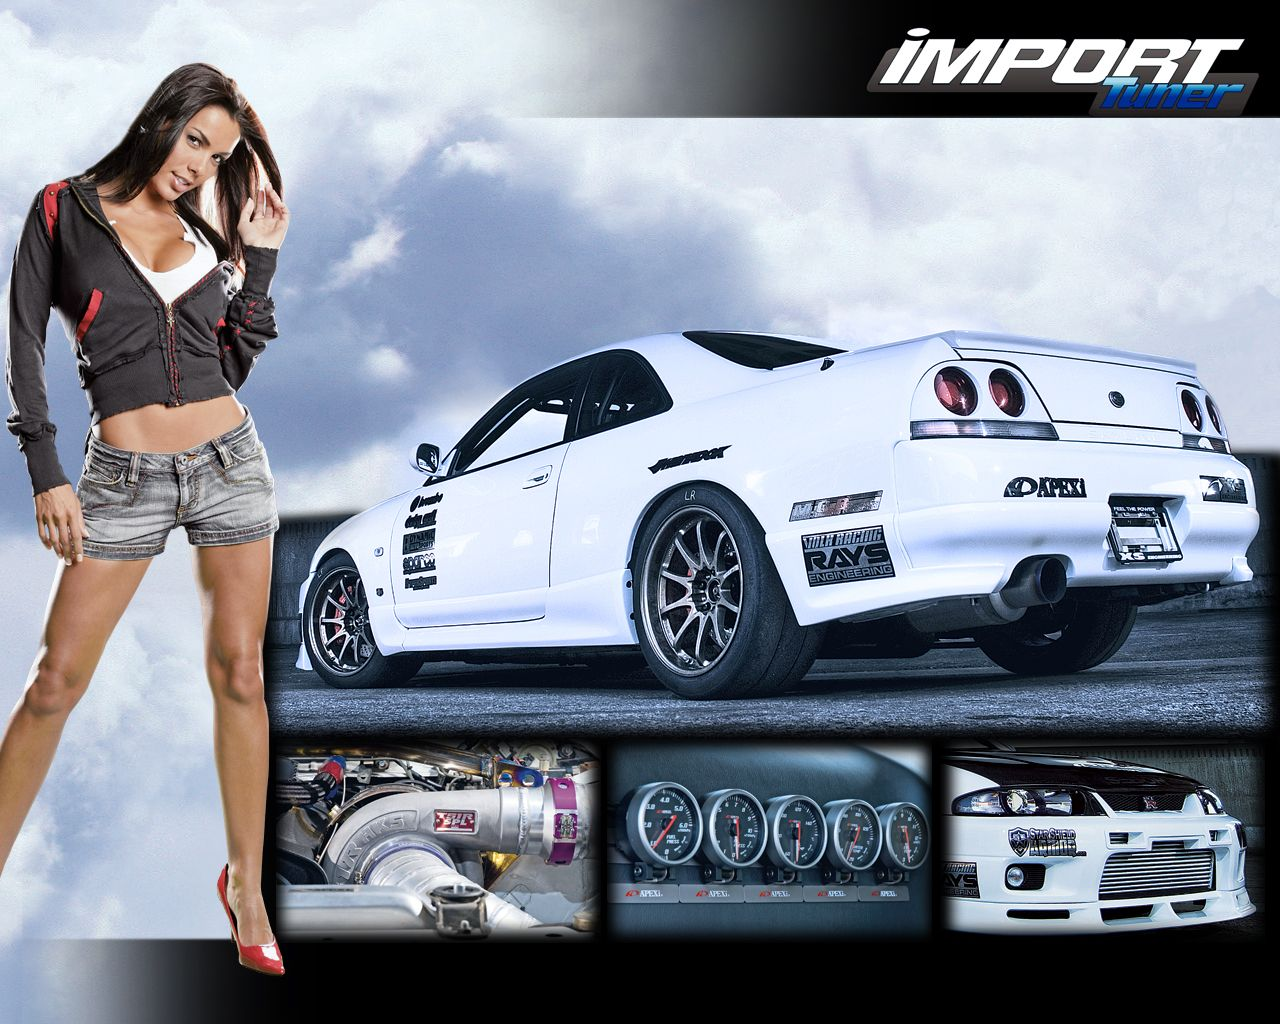 Import Models Page 2 - The hottest import tuner girls on ...